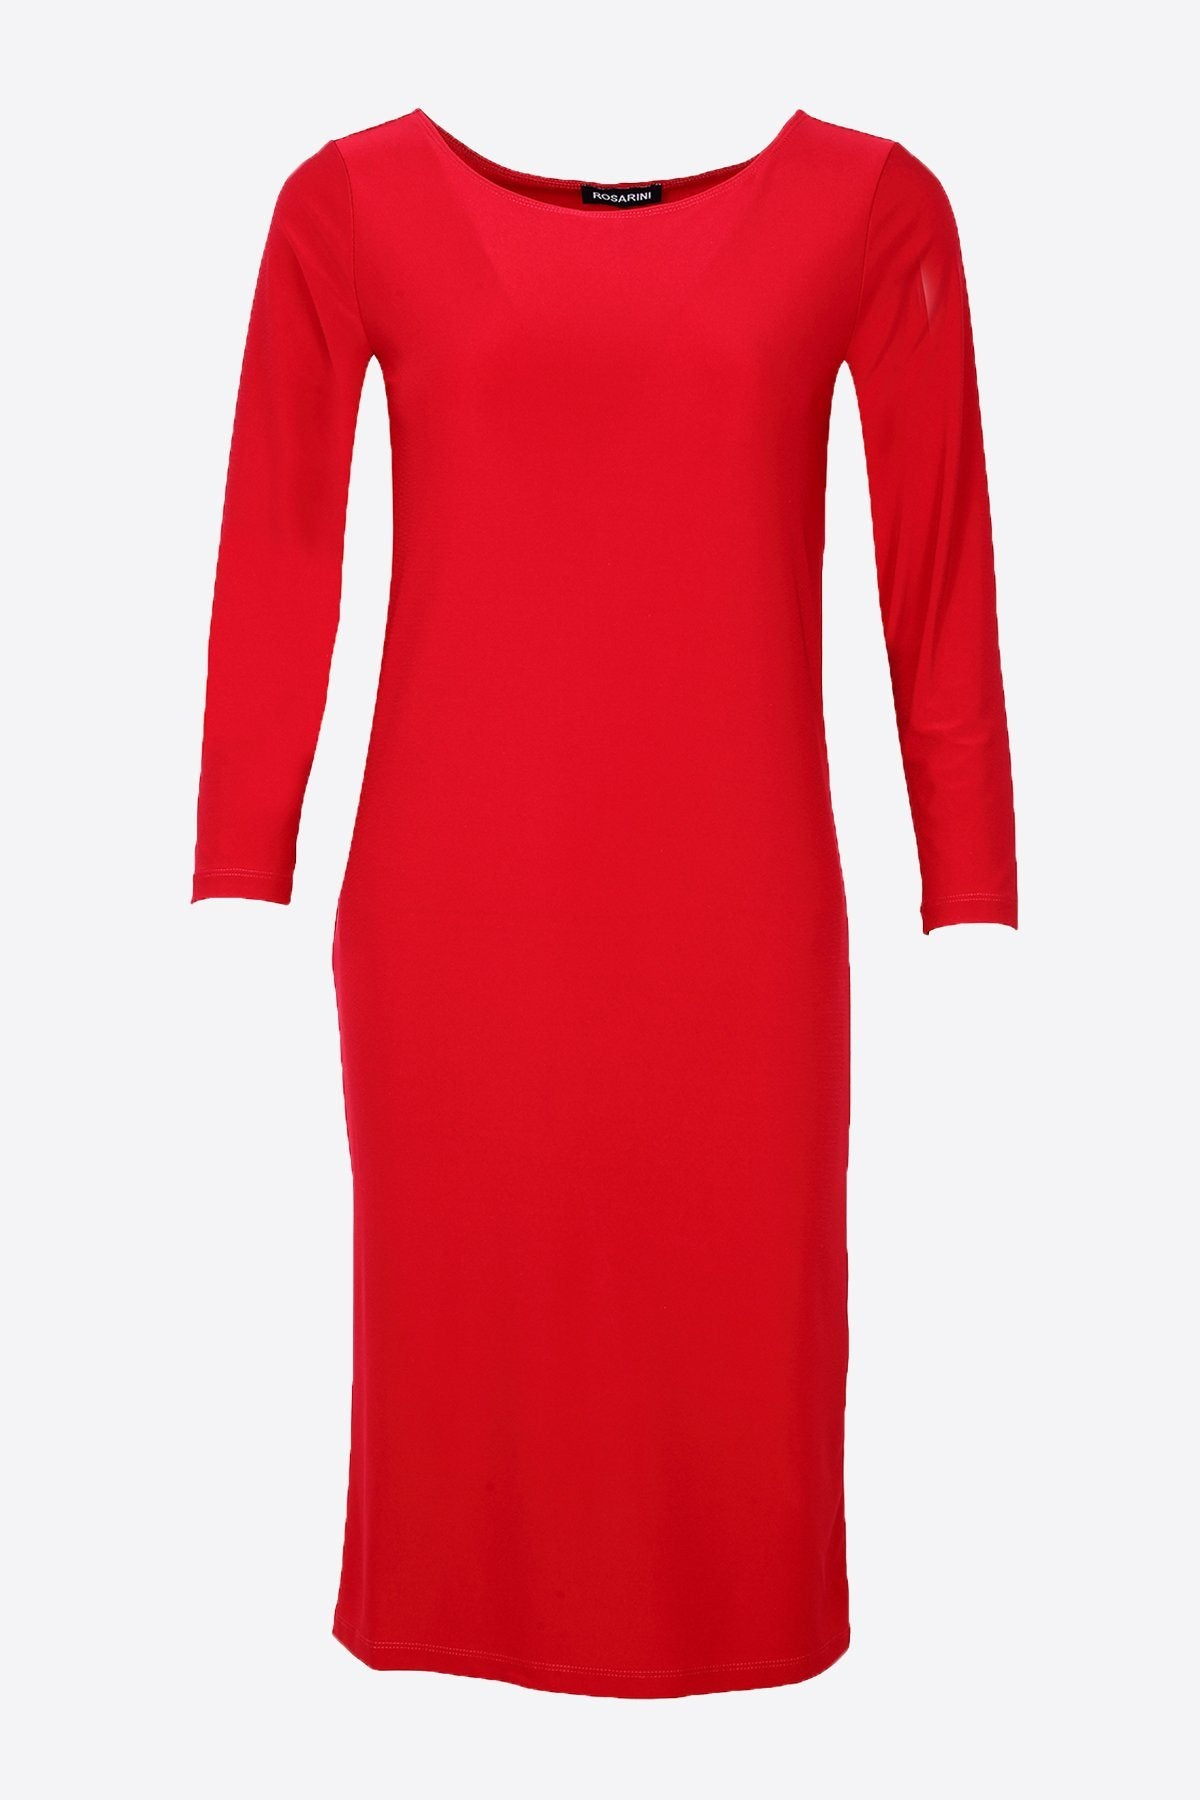 PLUS SIZE MRS PARK DRESS RED